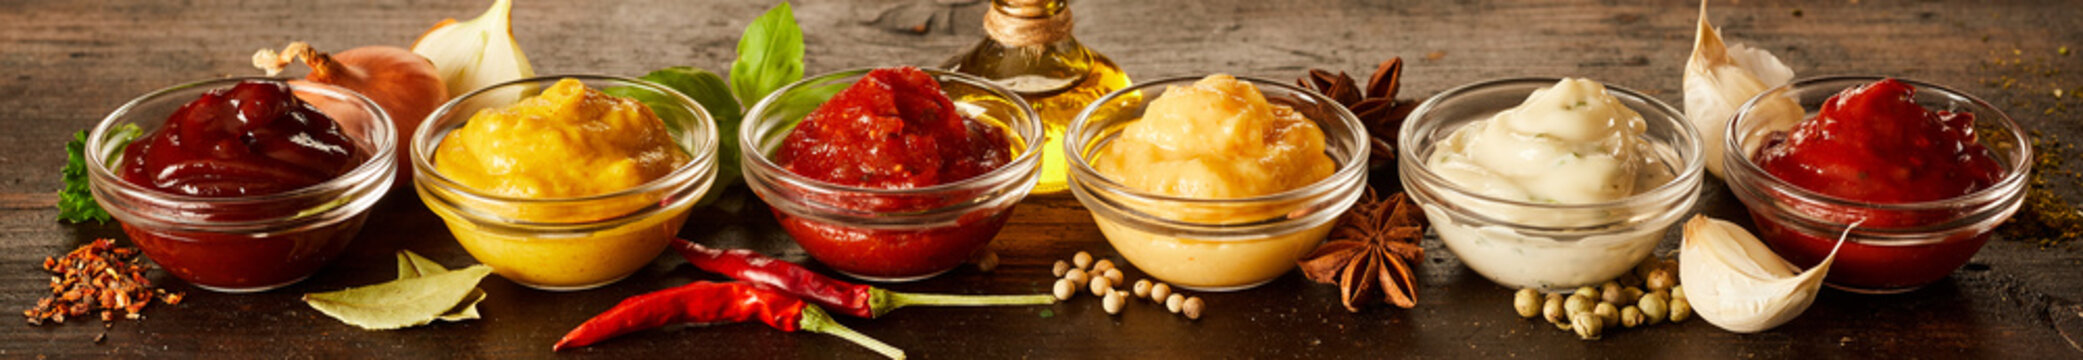 Assorted homemade sauces, marinades and dressings